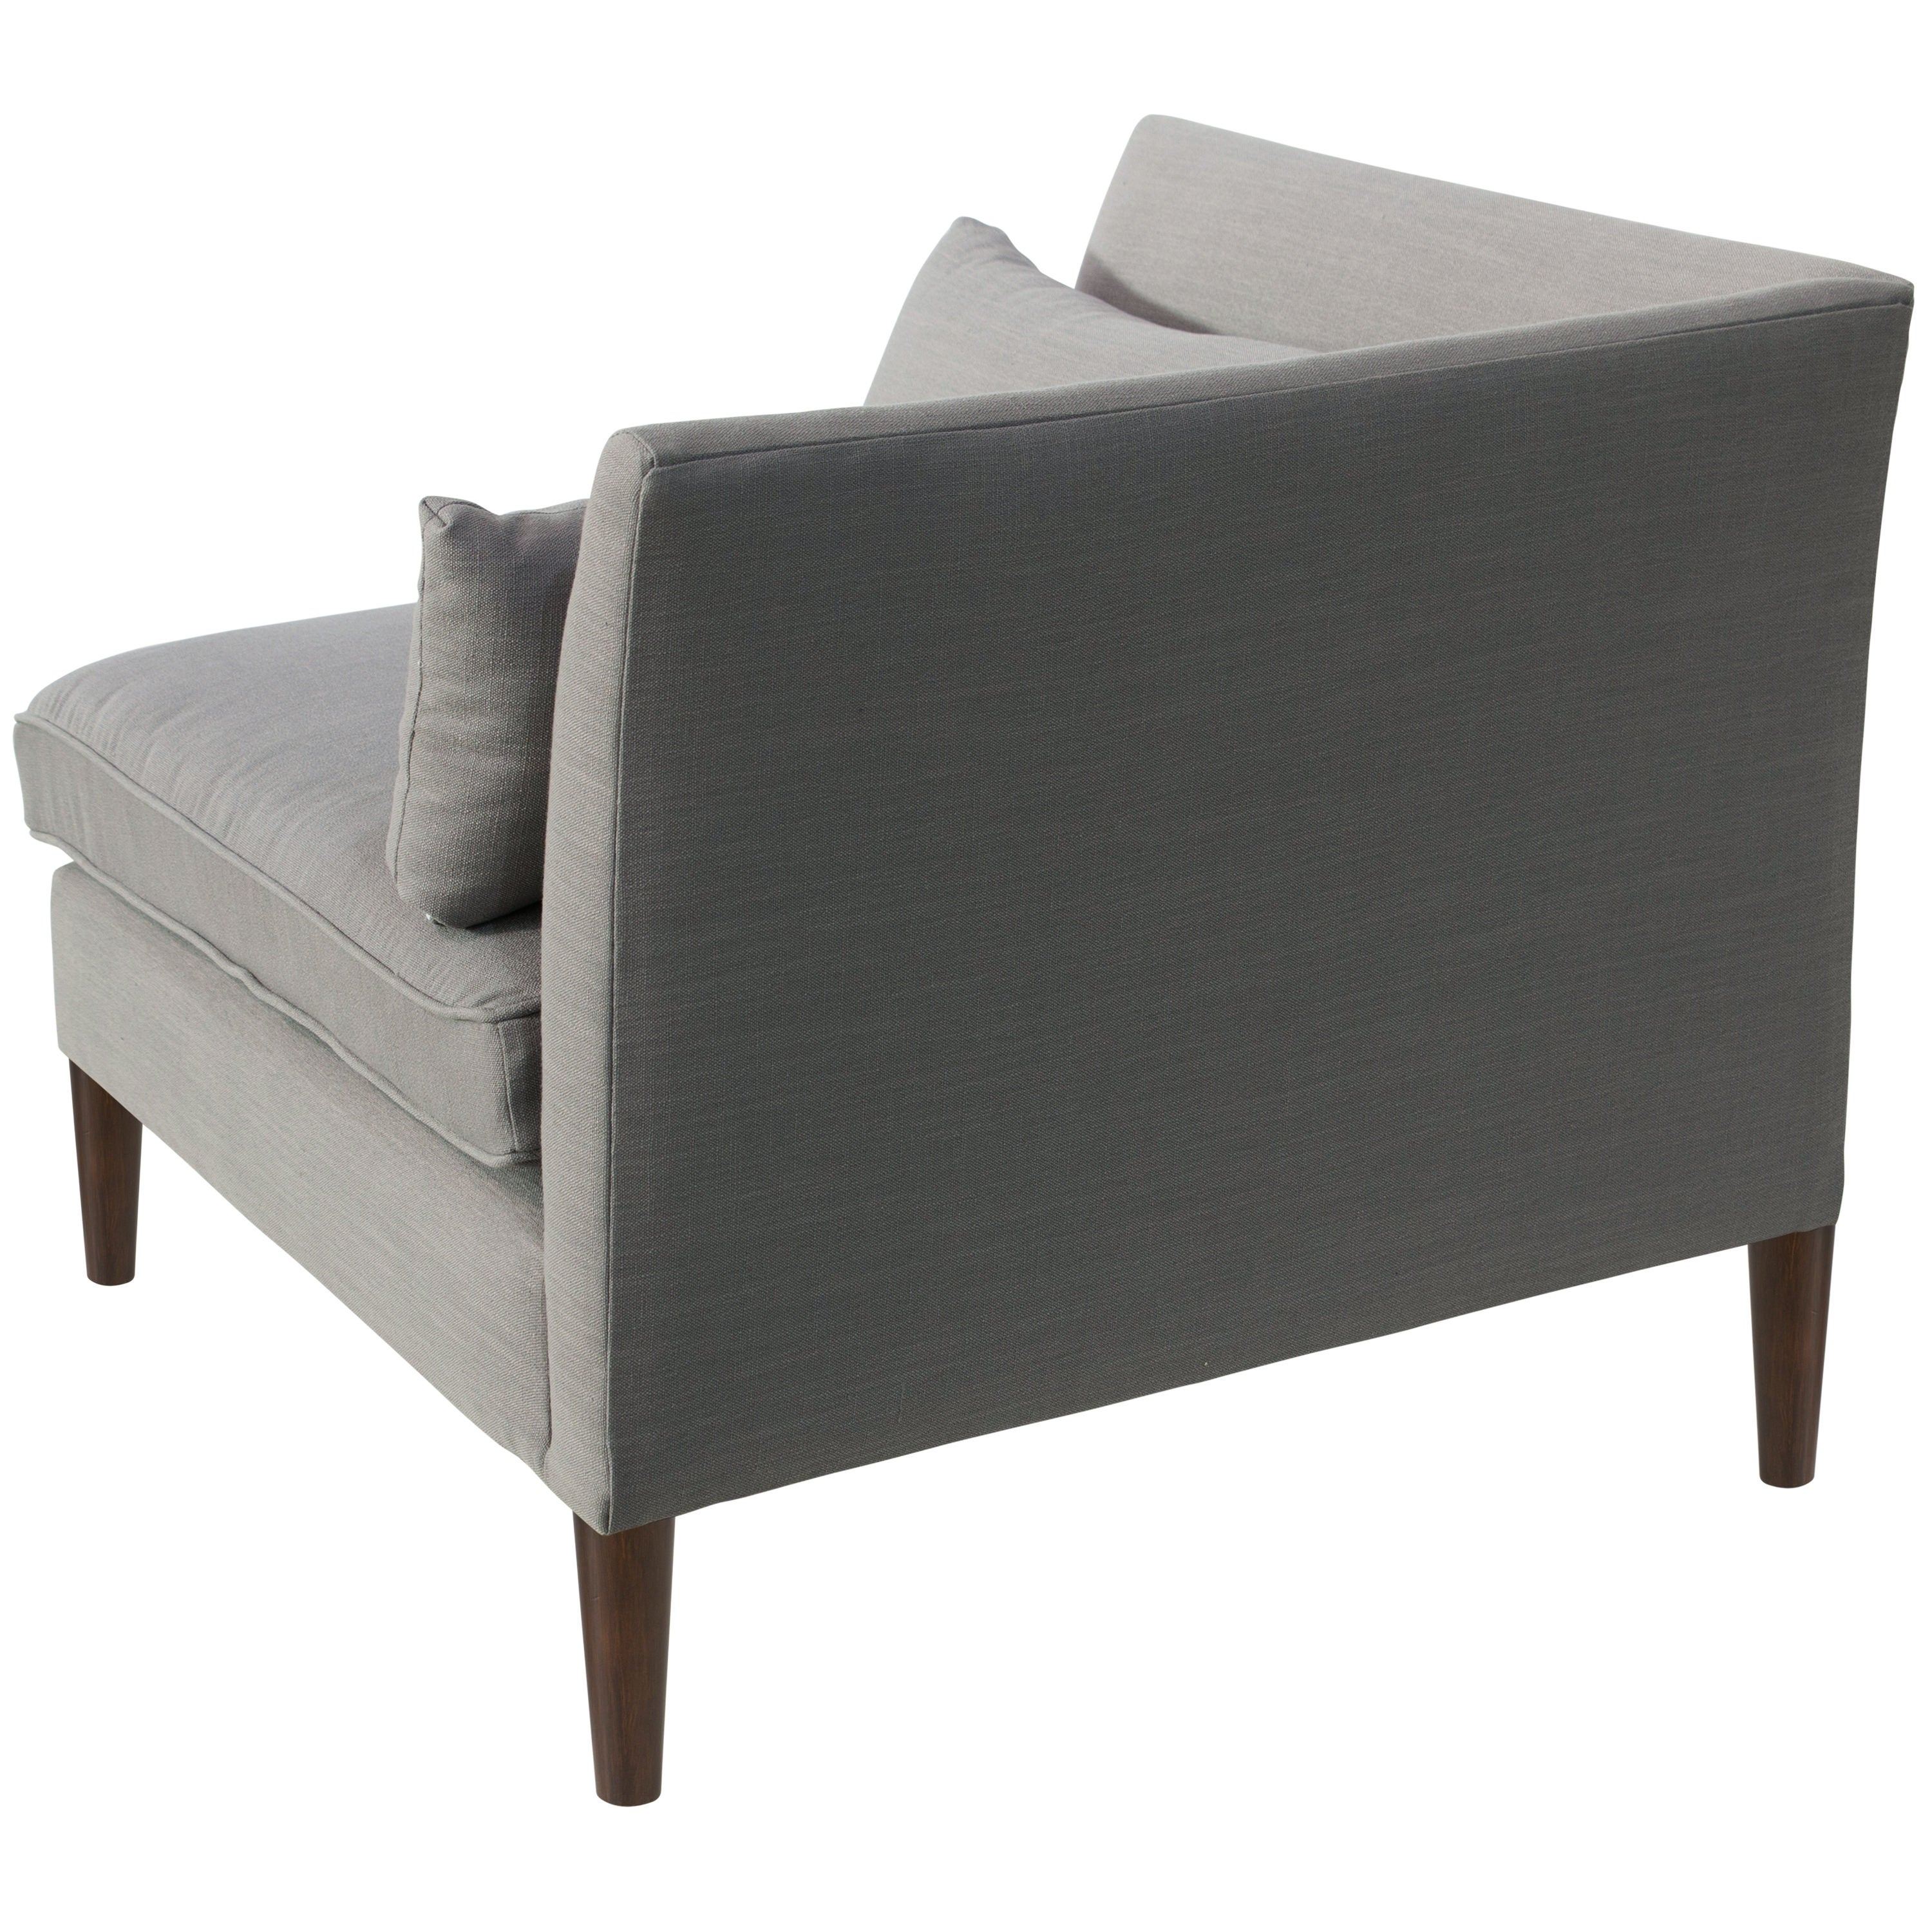 Shop Skyline Furniture Corner Chair In Linen Free Shipping Today